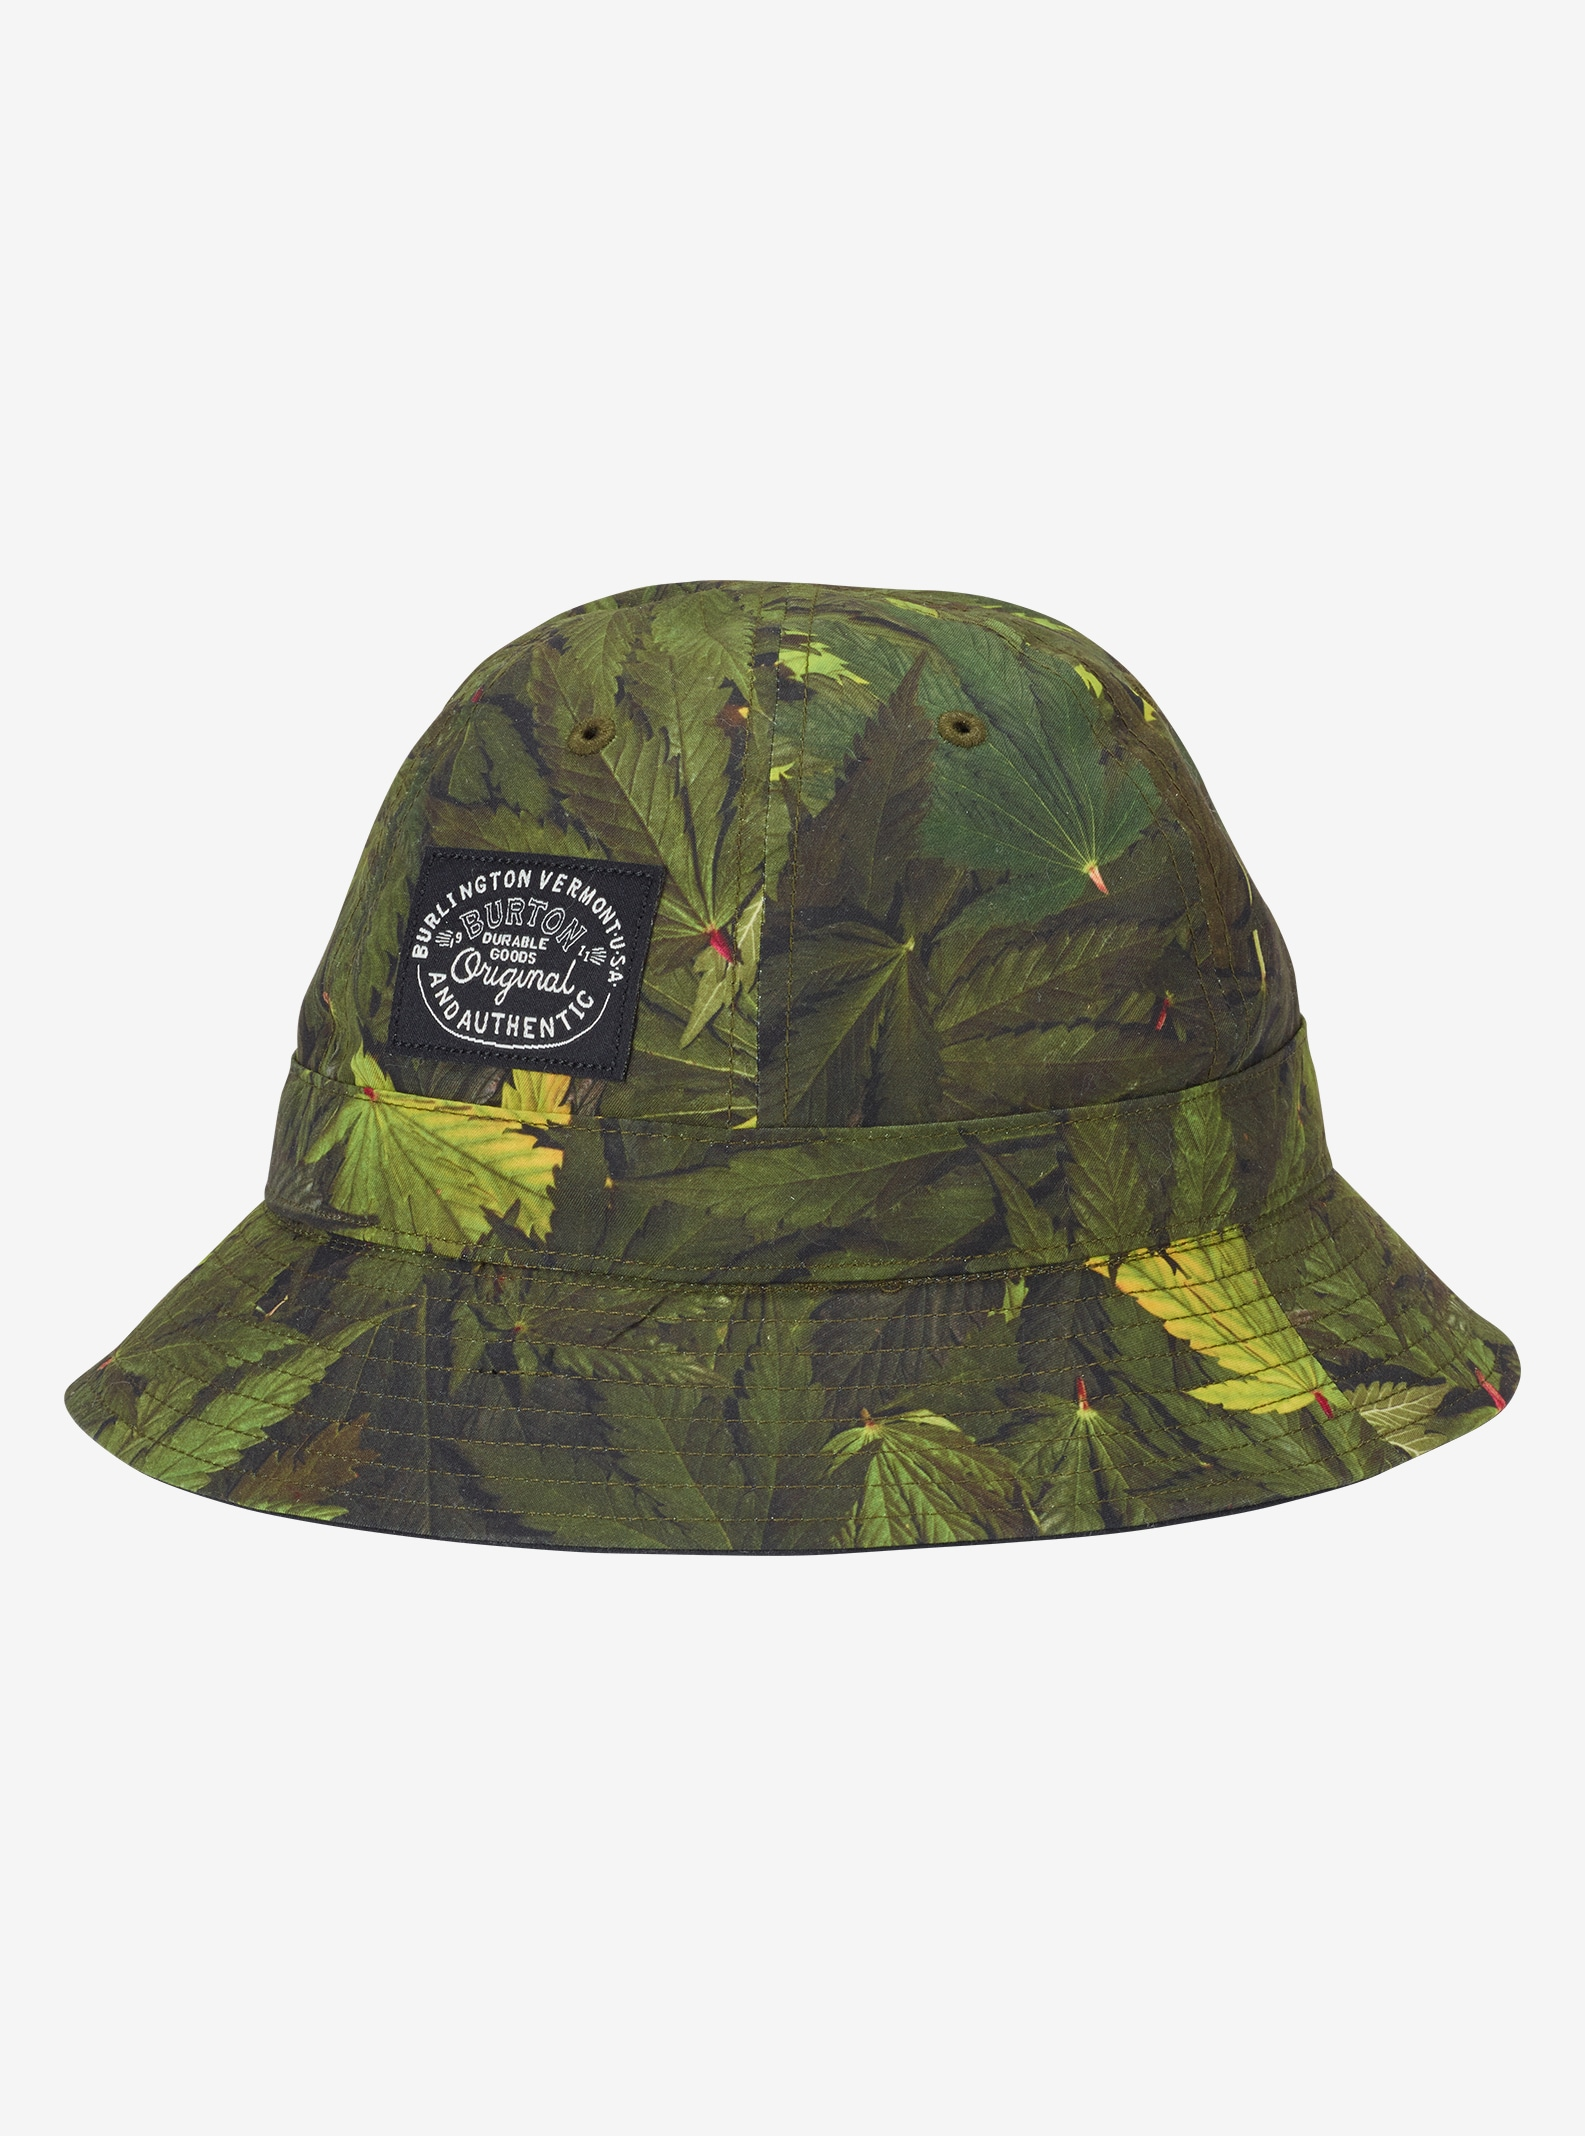 Burton Thompson Bucket Hat shown in Camobis